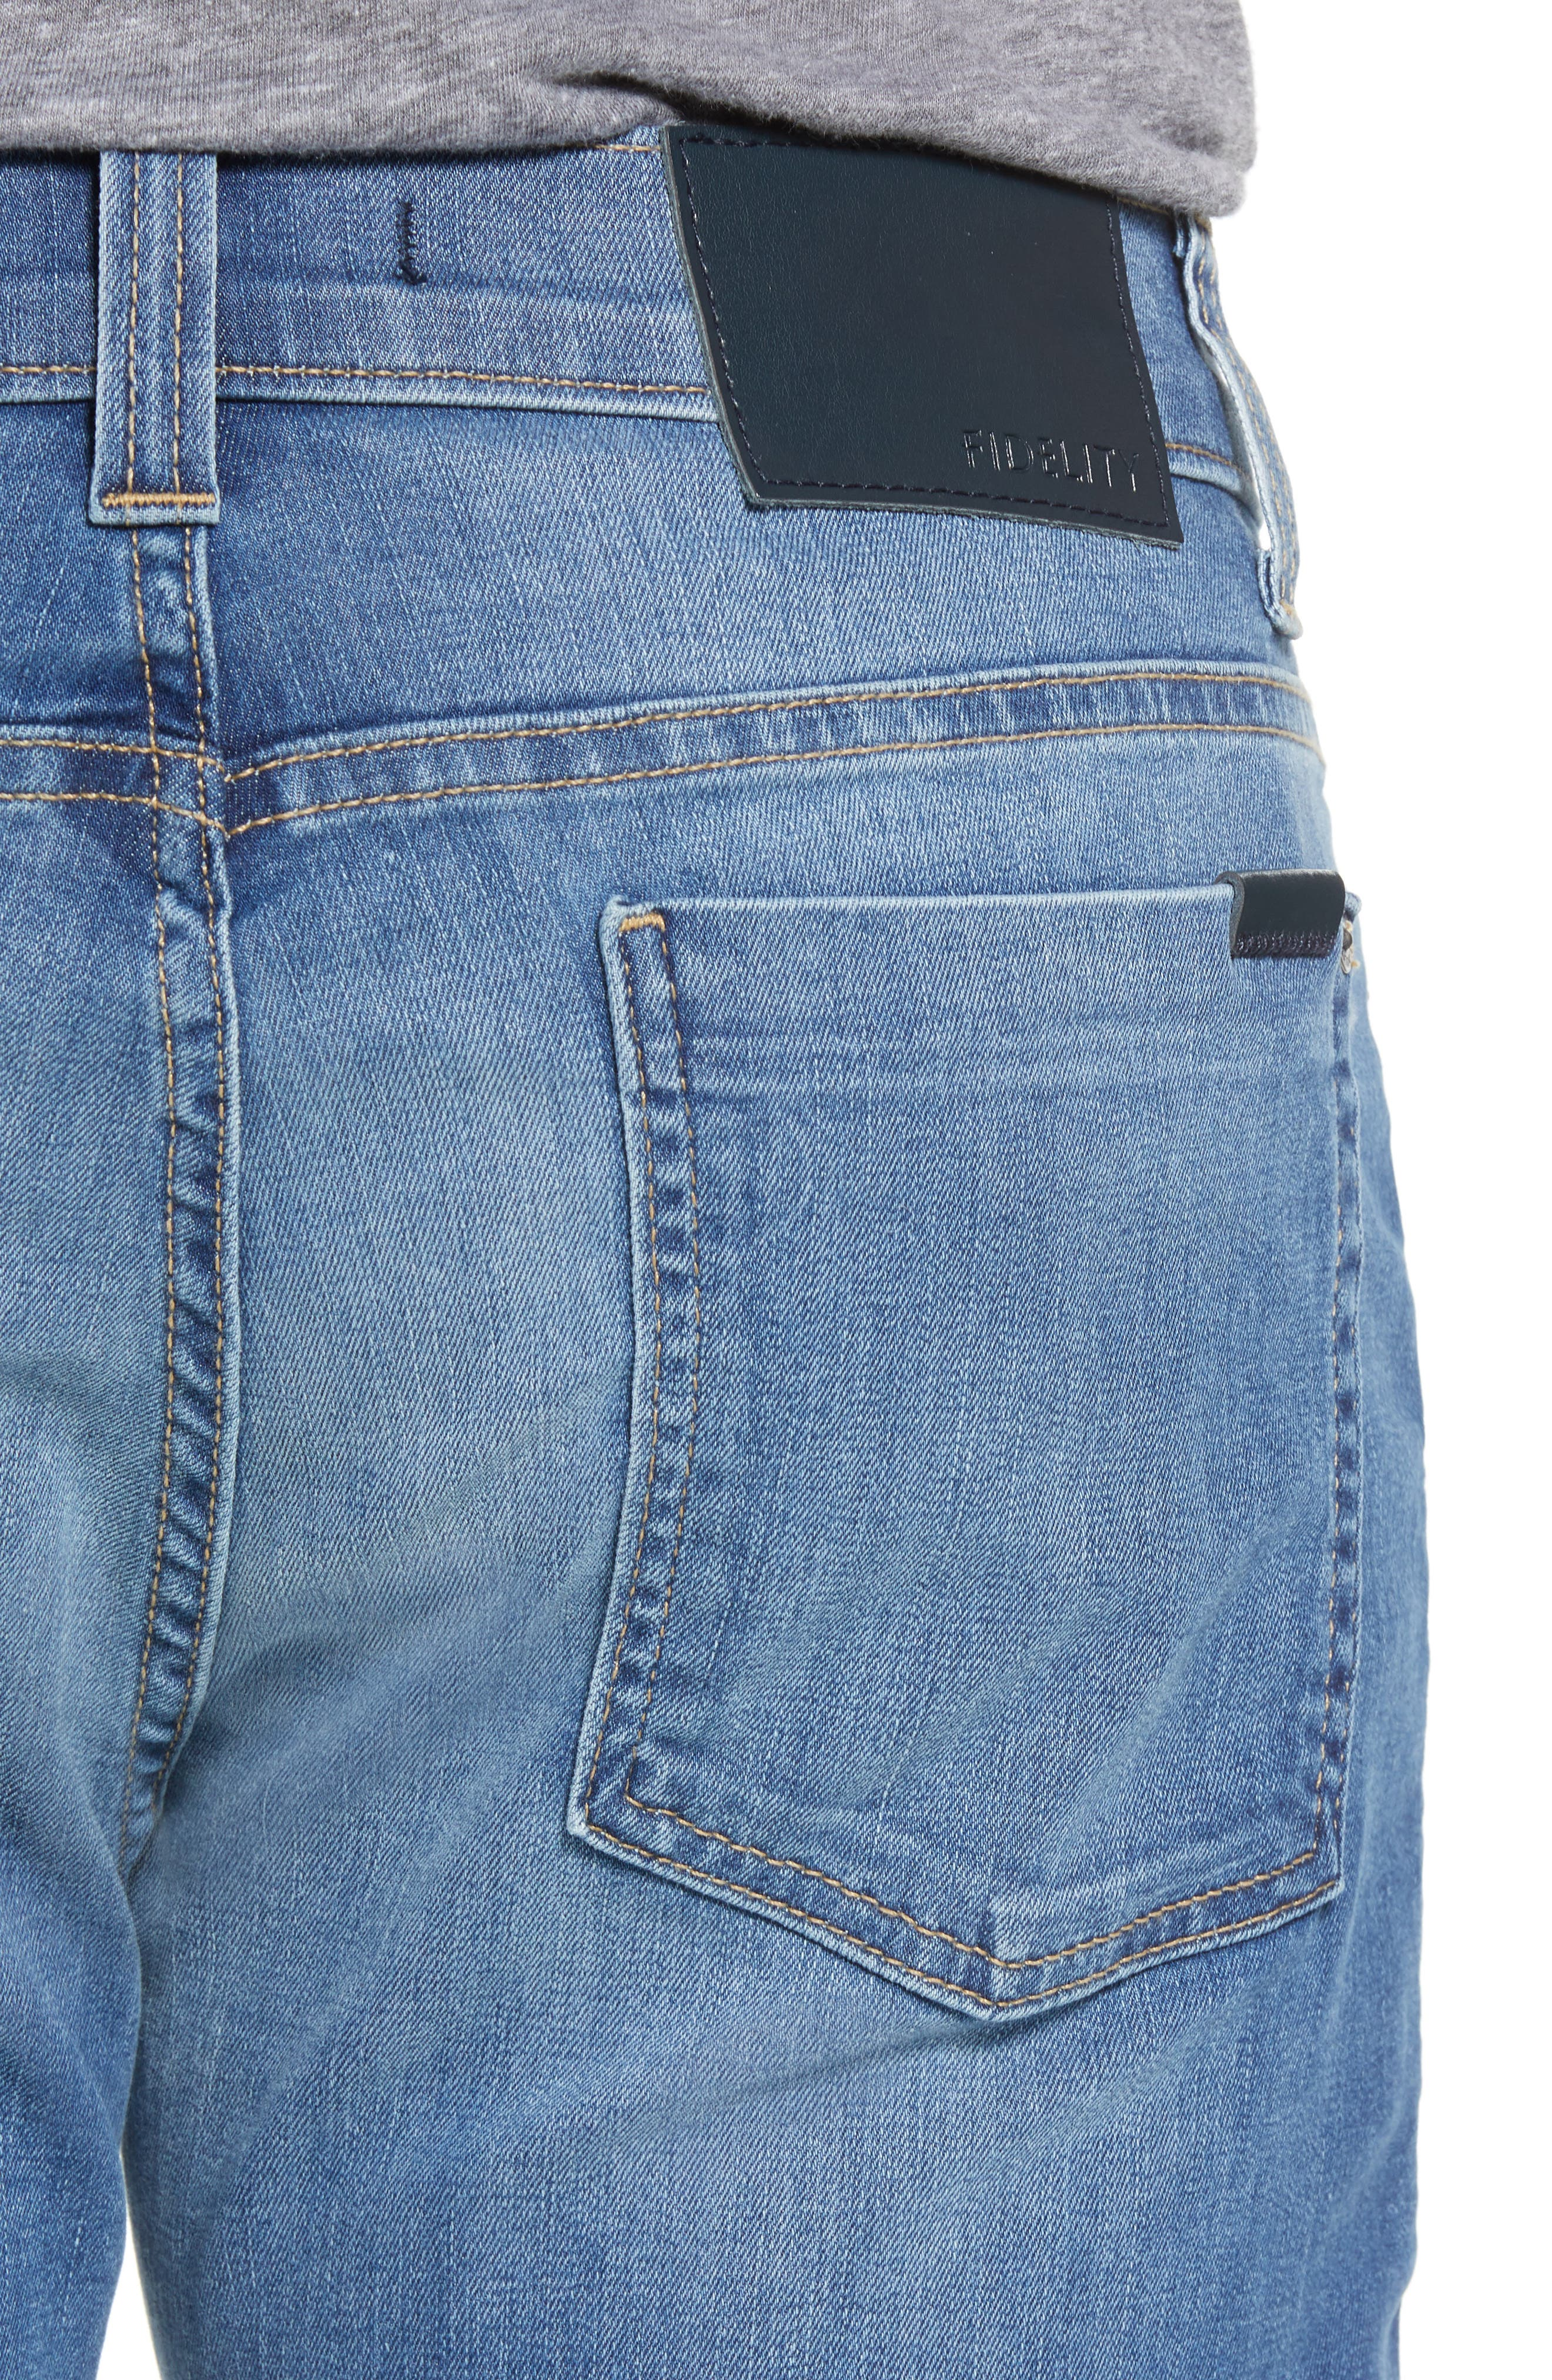 50-11 Relaxed Fit Jeans,                             Alternate thumbnail 4, color,